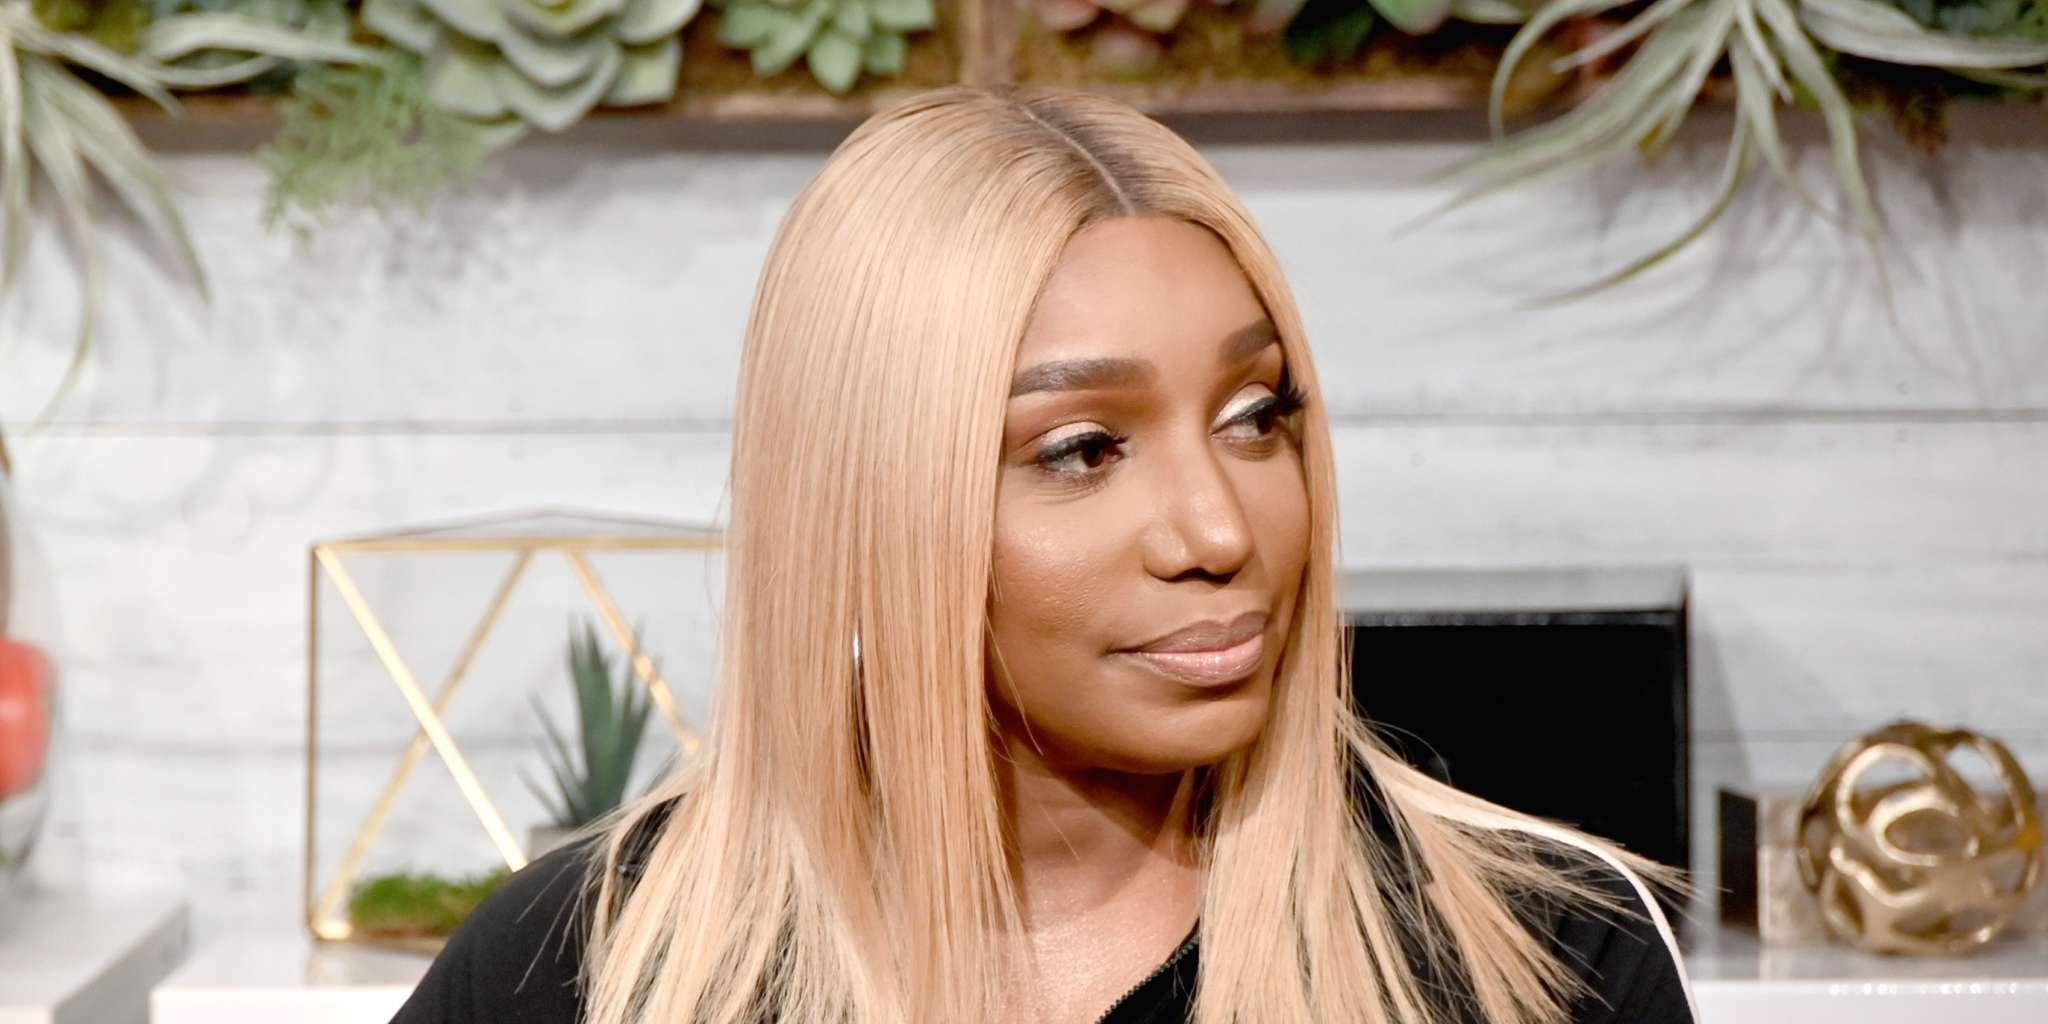 NeNe Leakes To Co-host New Glam Show - What Does That Mean For Her And RHOA As She's Still To Sign The Contract?